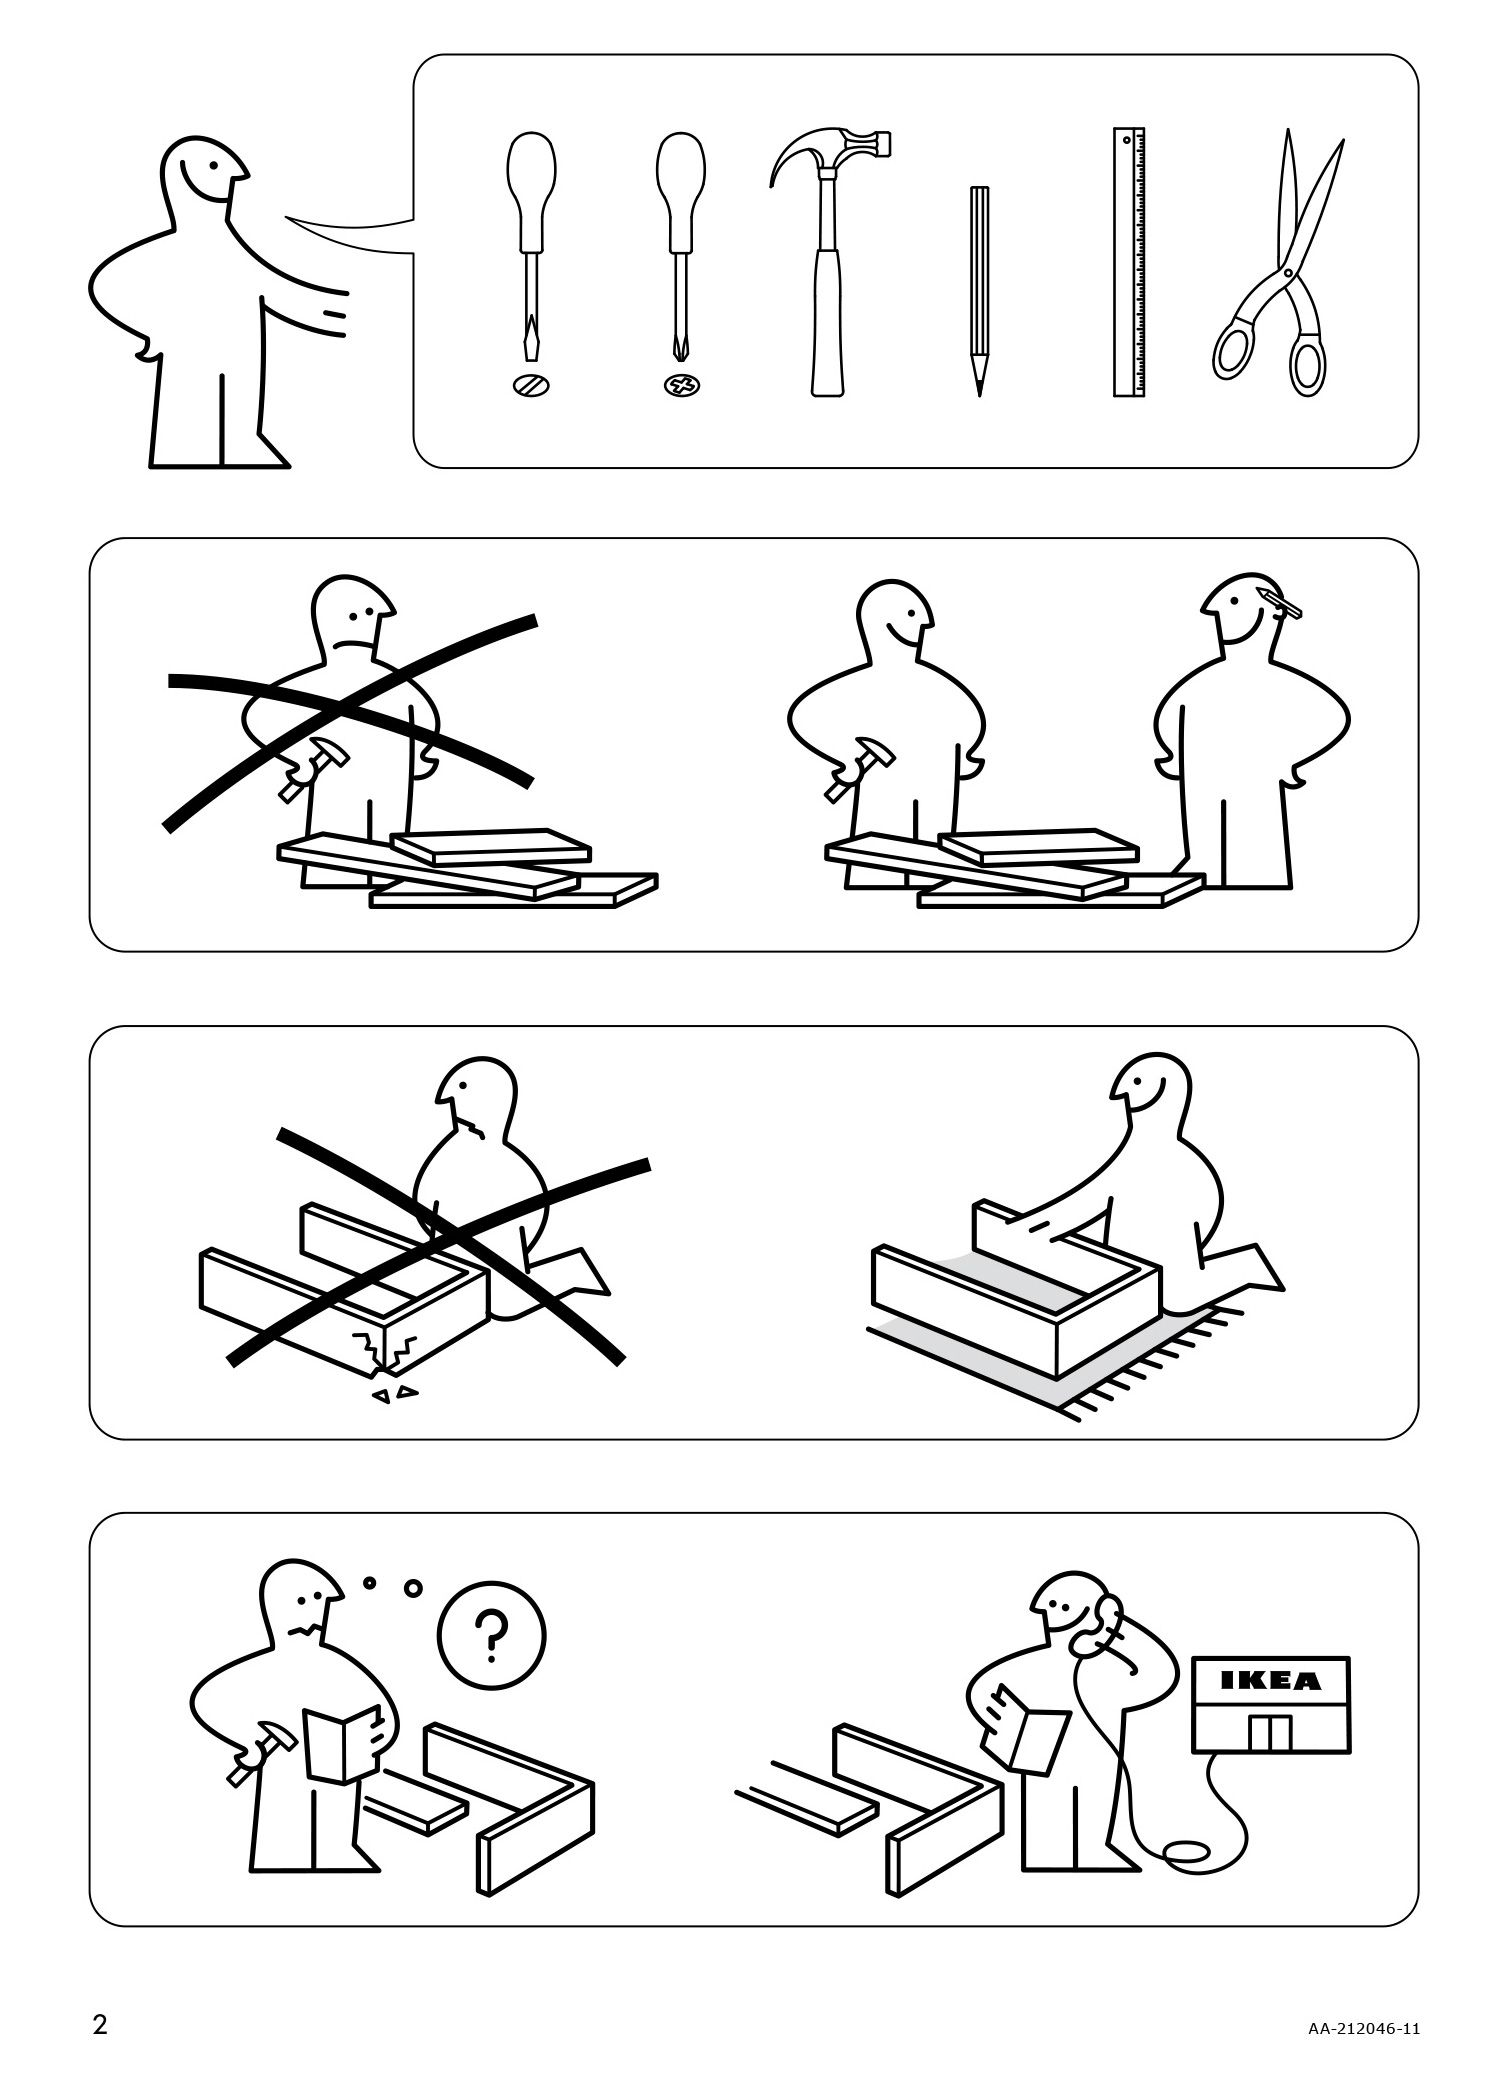 Ikea Instruction Manuals The Best Of Manual And User Guide Design Threefifty User